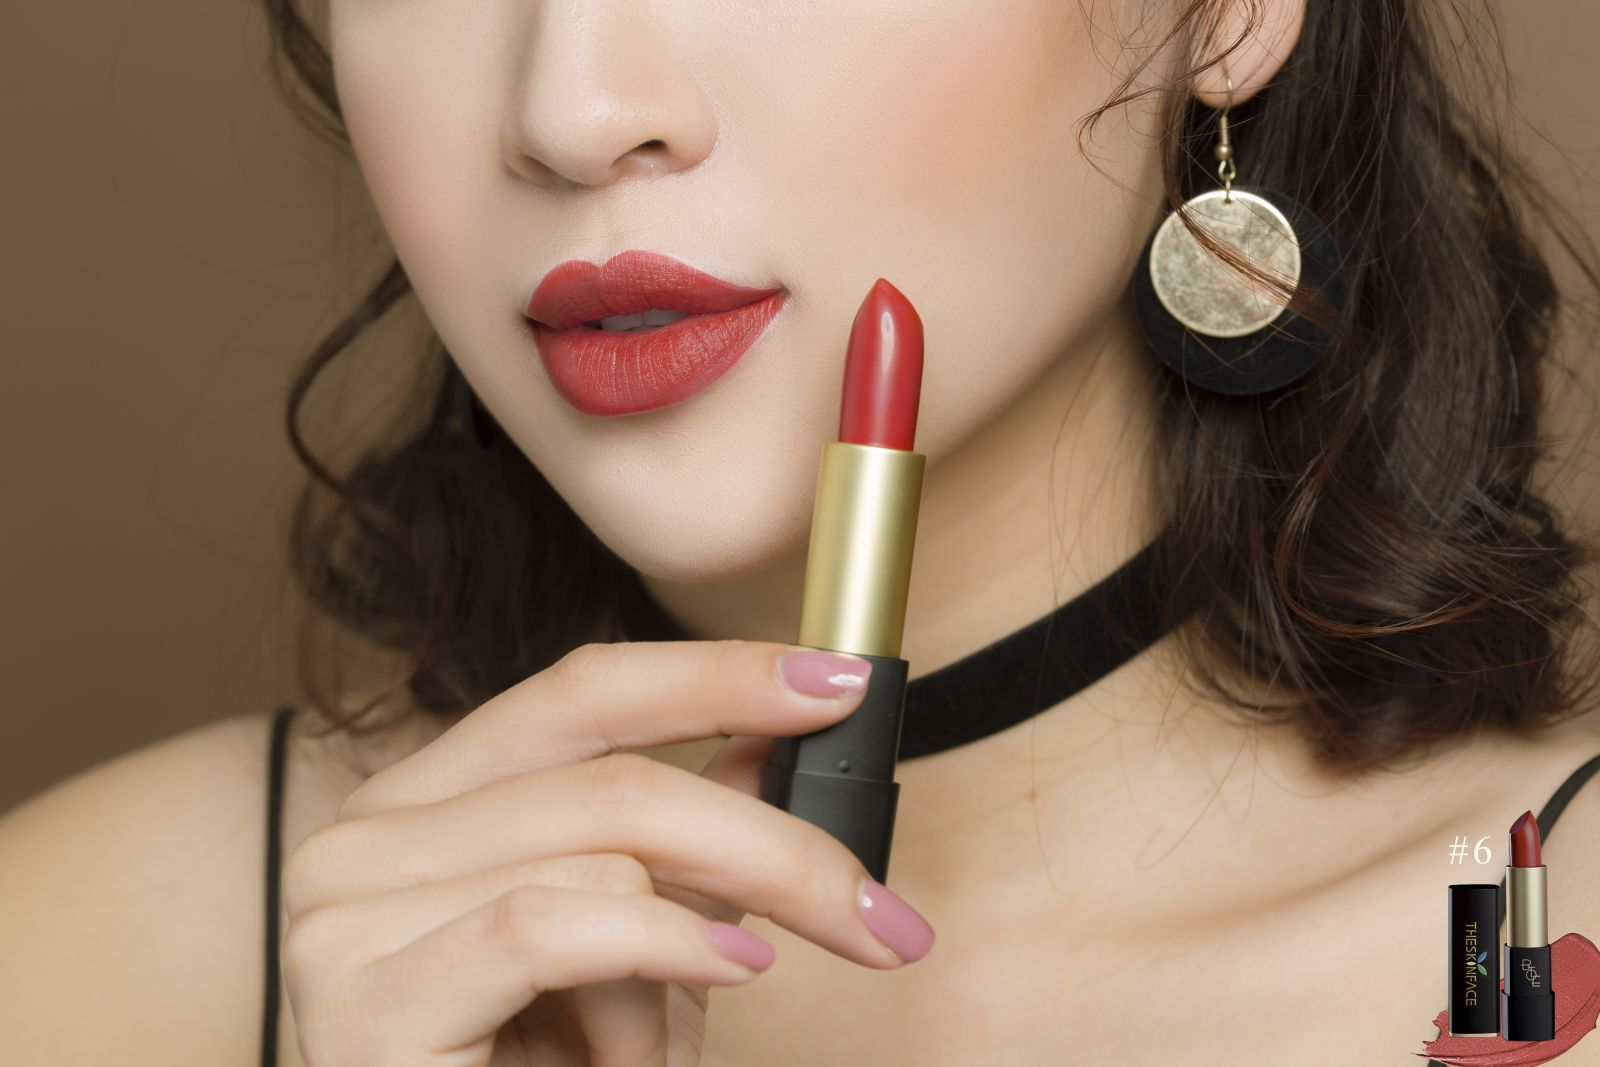 Son Thỏi Lì The Skin Face Bote Lipstick 2018 Romantic Series